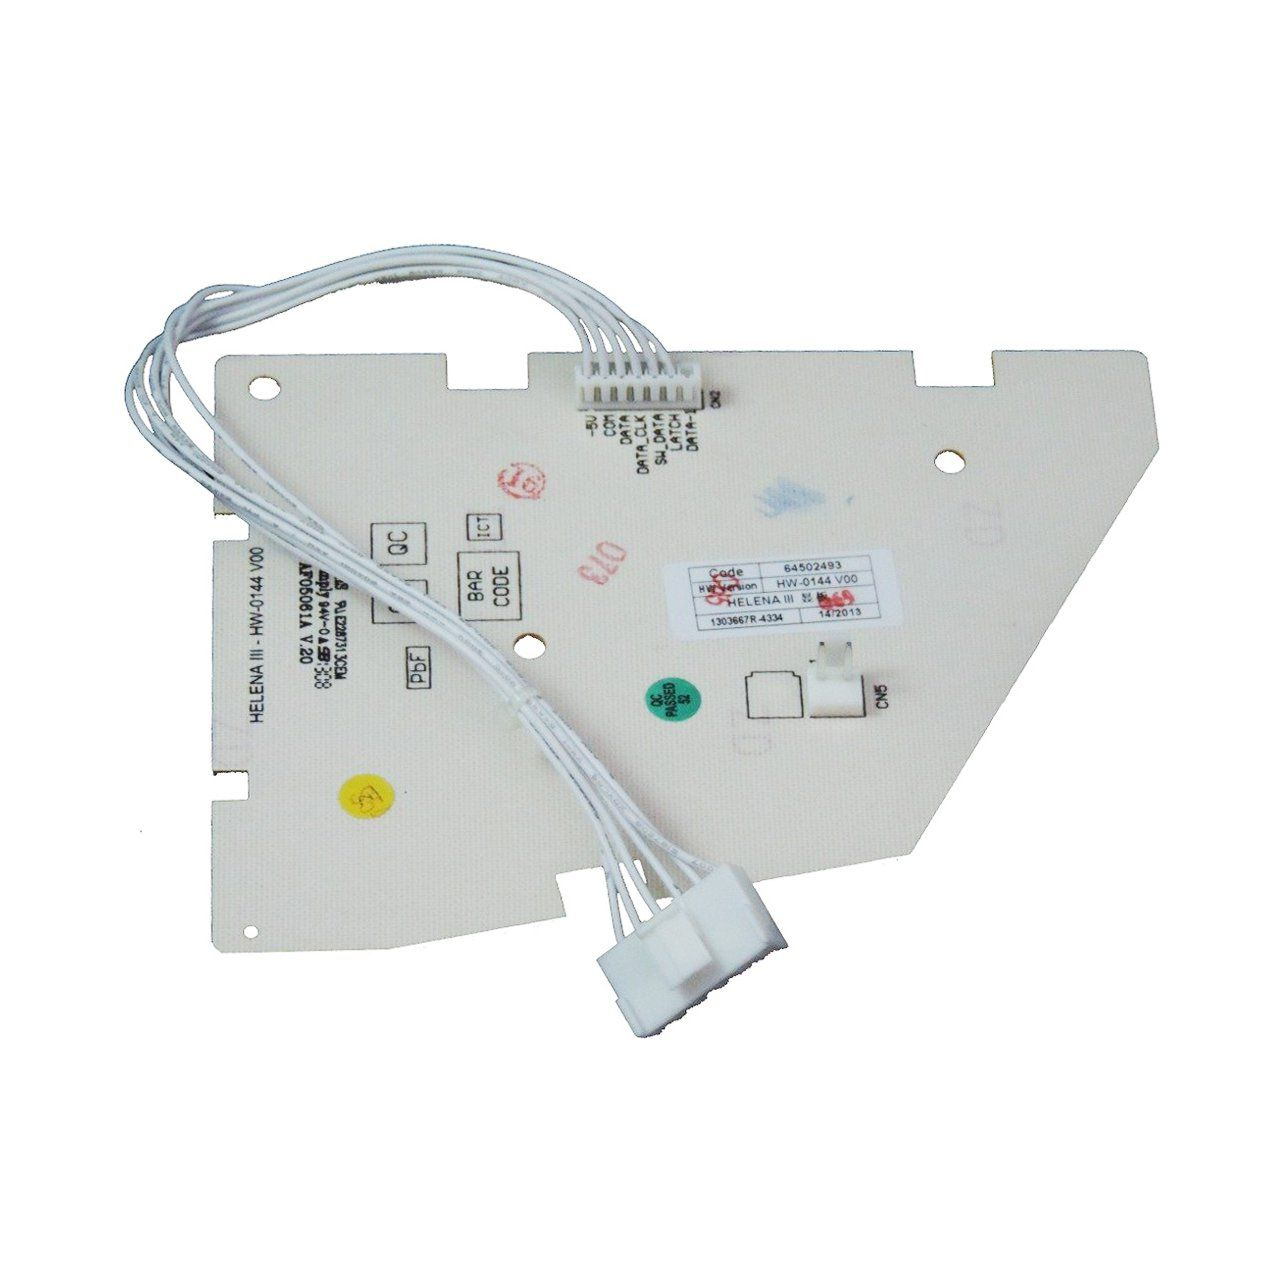 Placa Interface Electrolux Ltp10 Original - 64502493